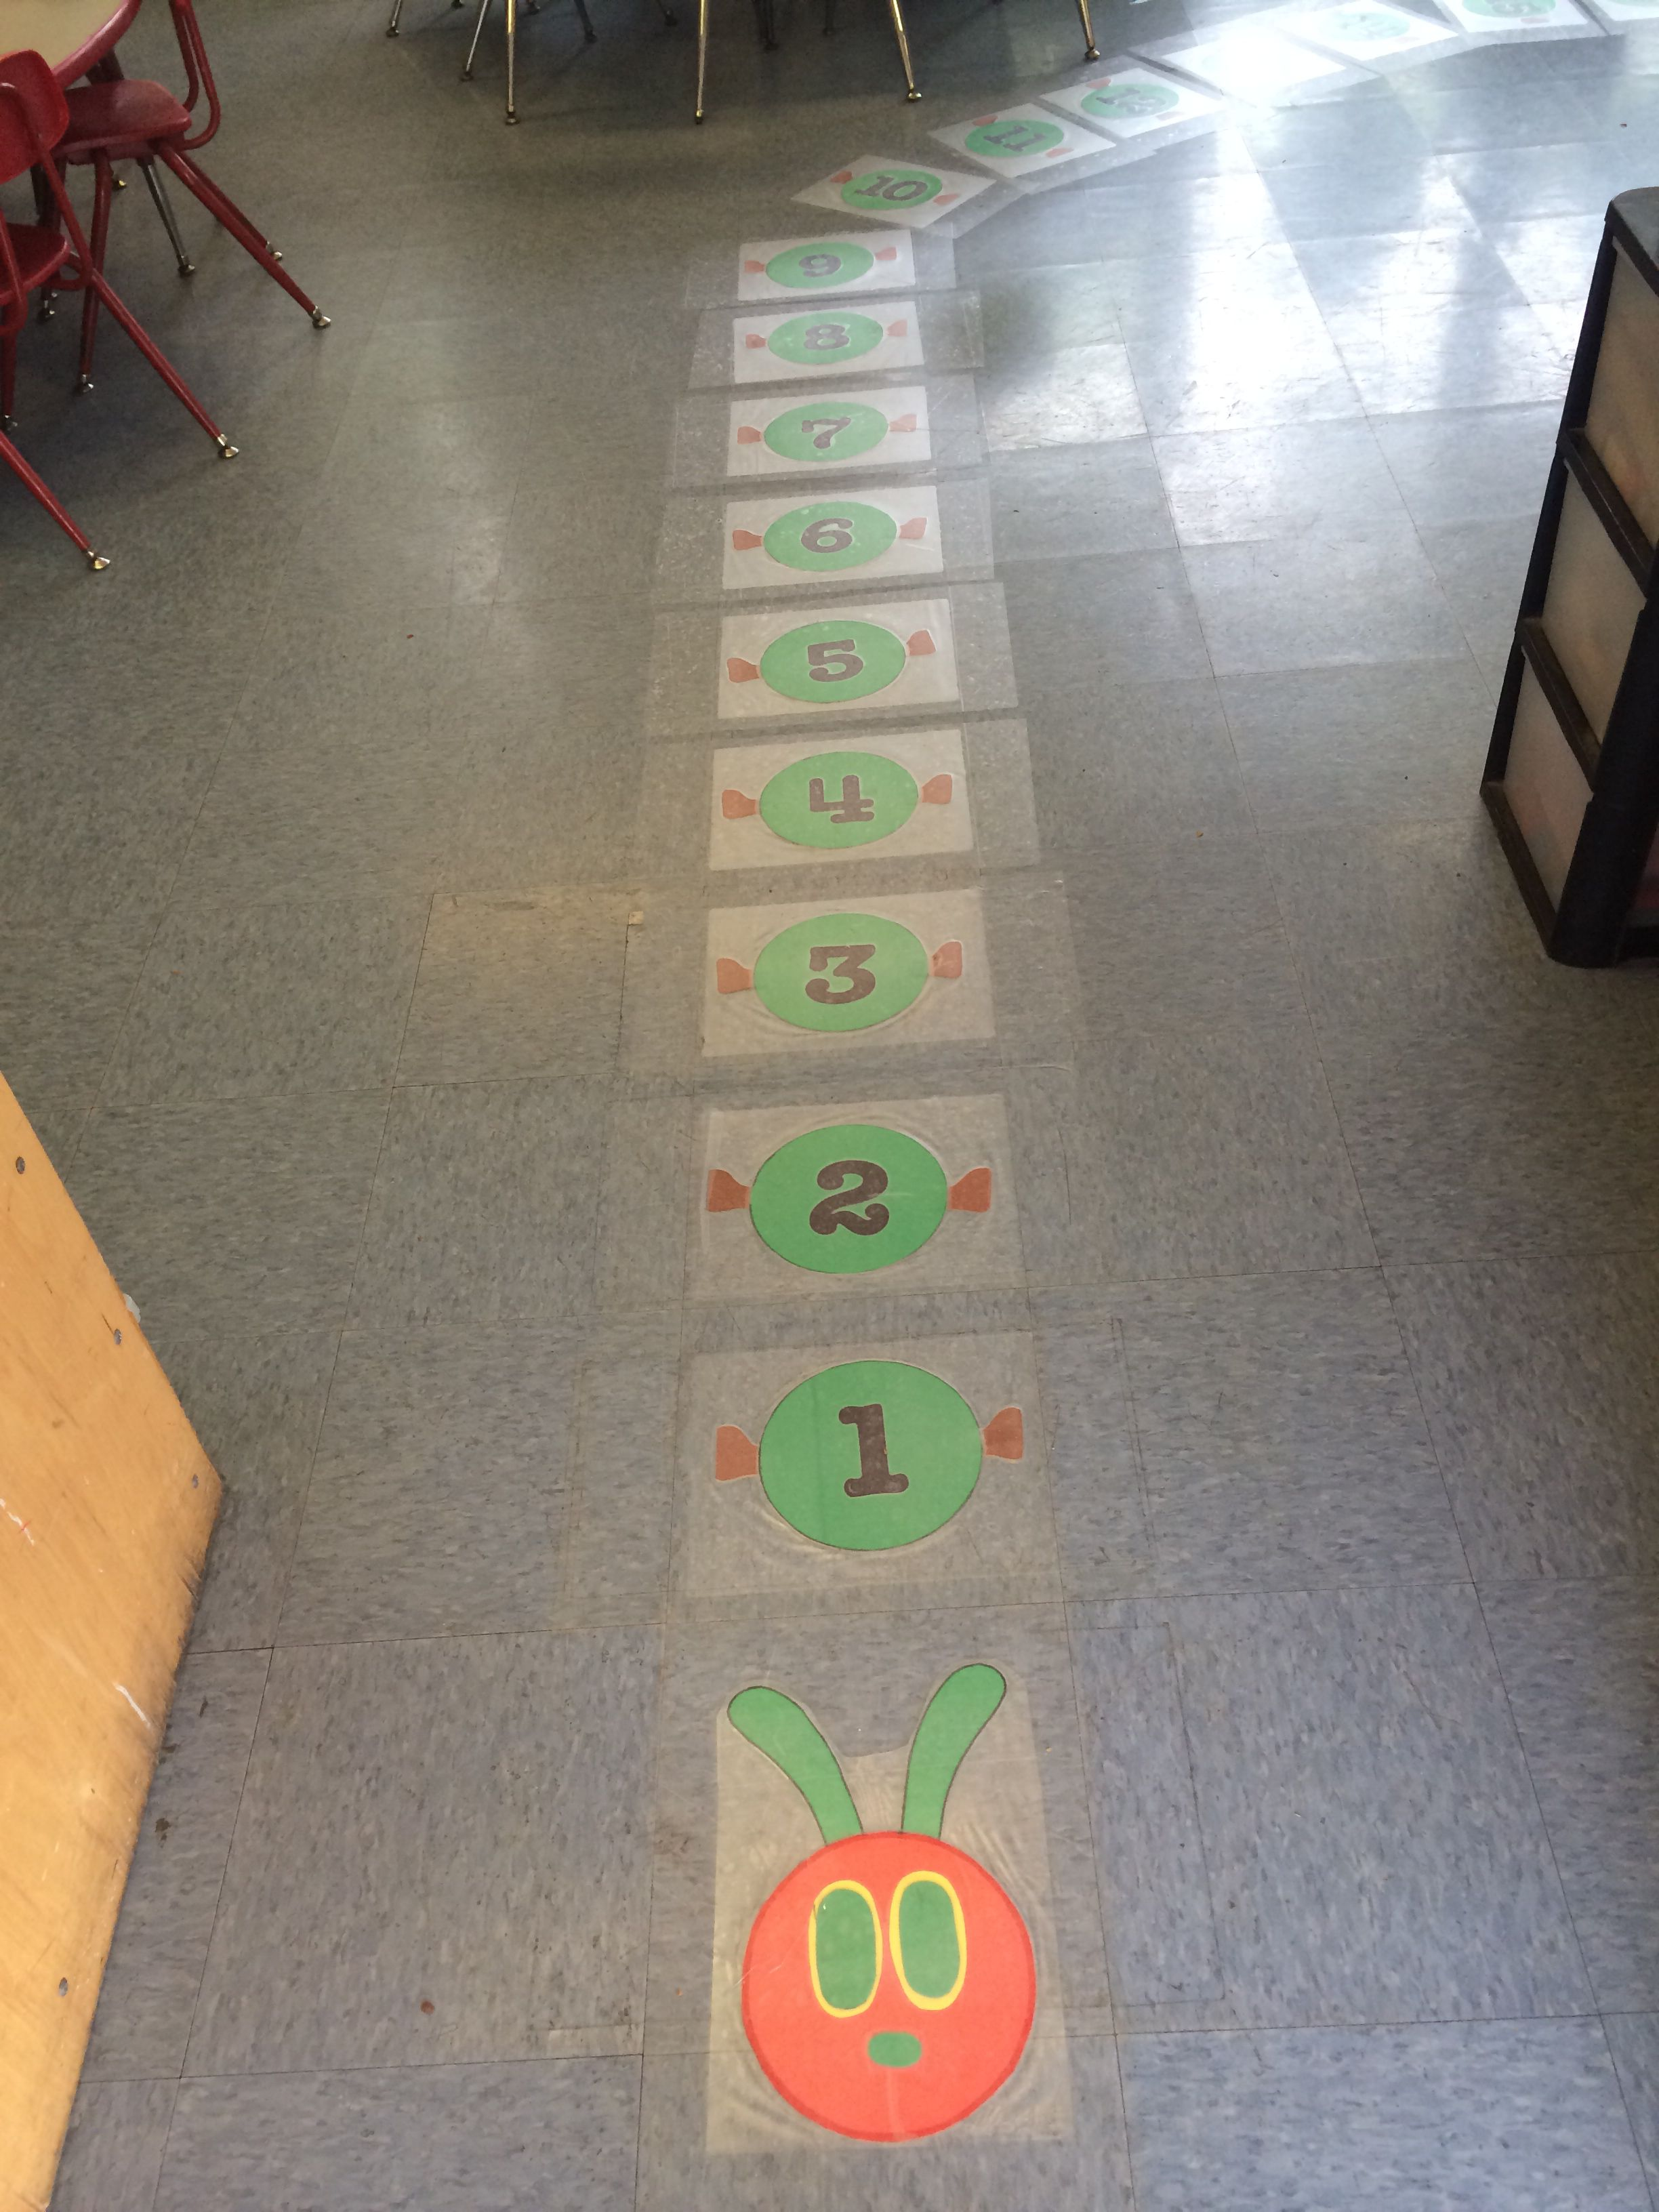 The Very Hungry Caterpillar Theme Fun Way To Help Preschoolers How To Line Up 0